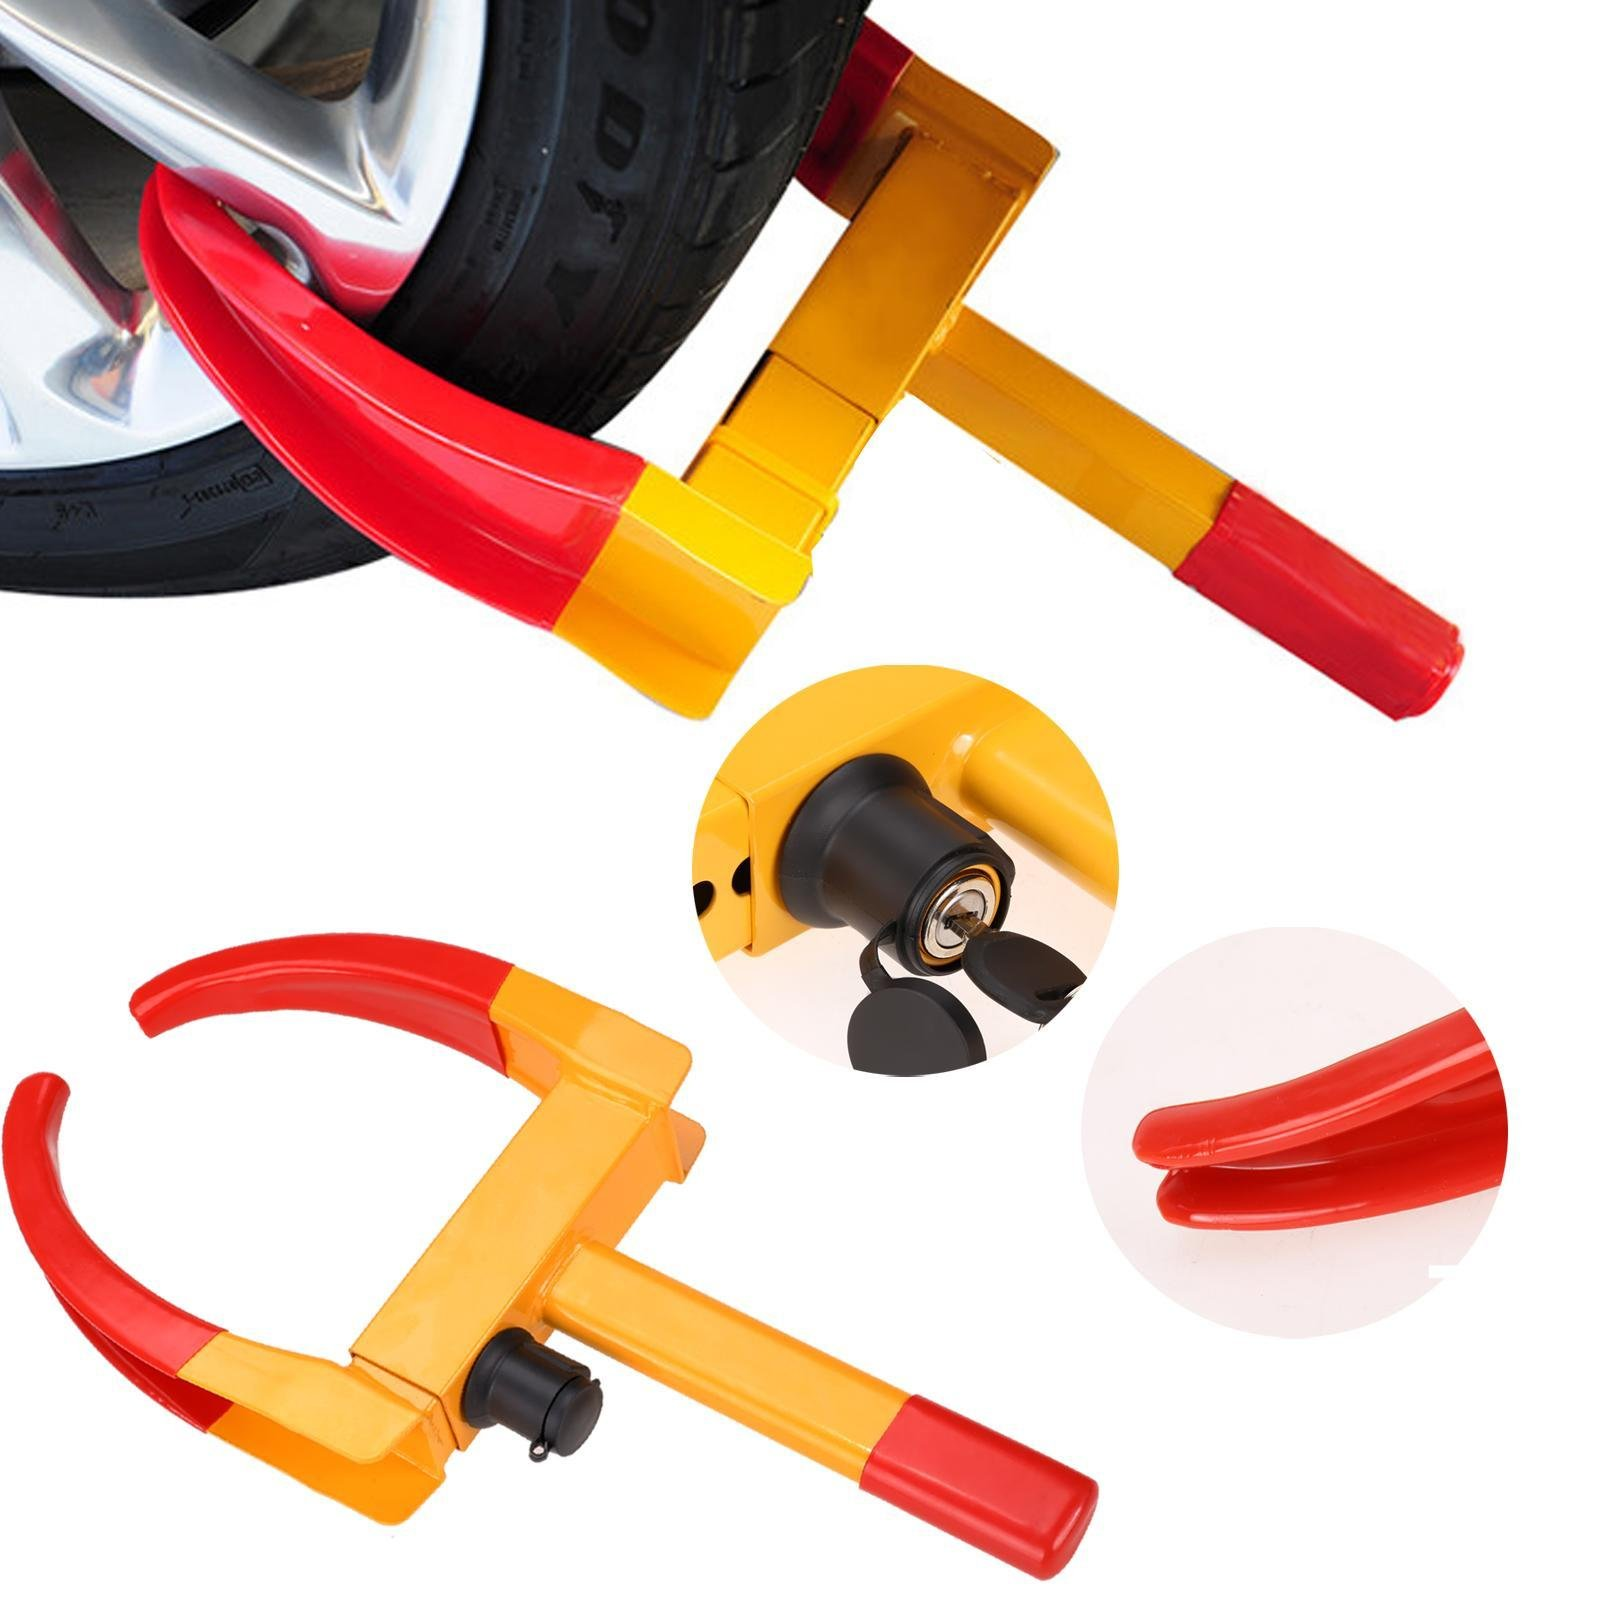 Pesters Heavy-duty Car Tire Wheel Lock Automotive Anti-theft Lock, Towing Wheel Clamp Boot Tire Lock for Car Truck ATV, RV, Golf Carts, Boat Trailers, Scooters, Lawn Mowers (US STOCK) (Type_1)